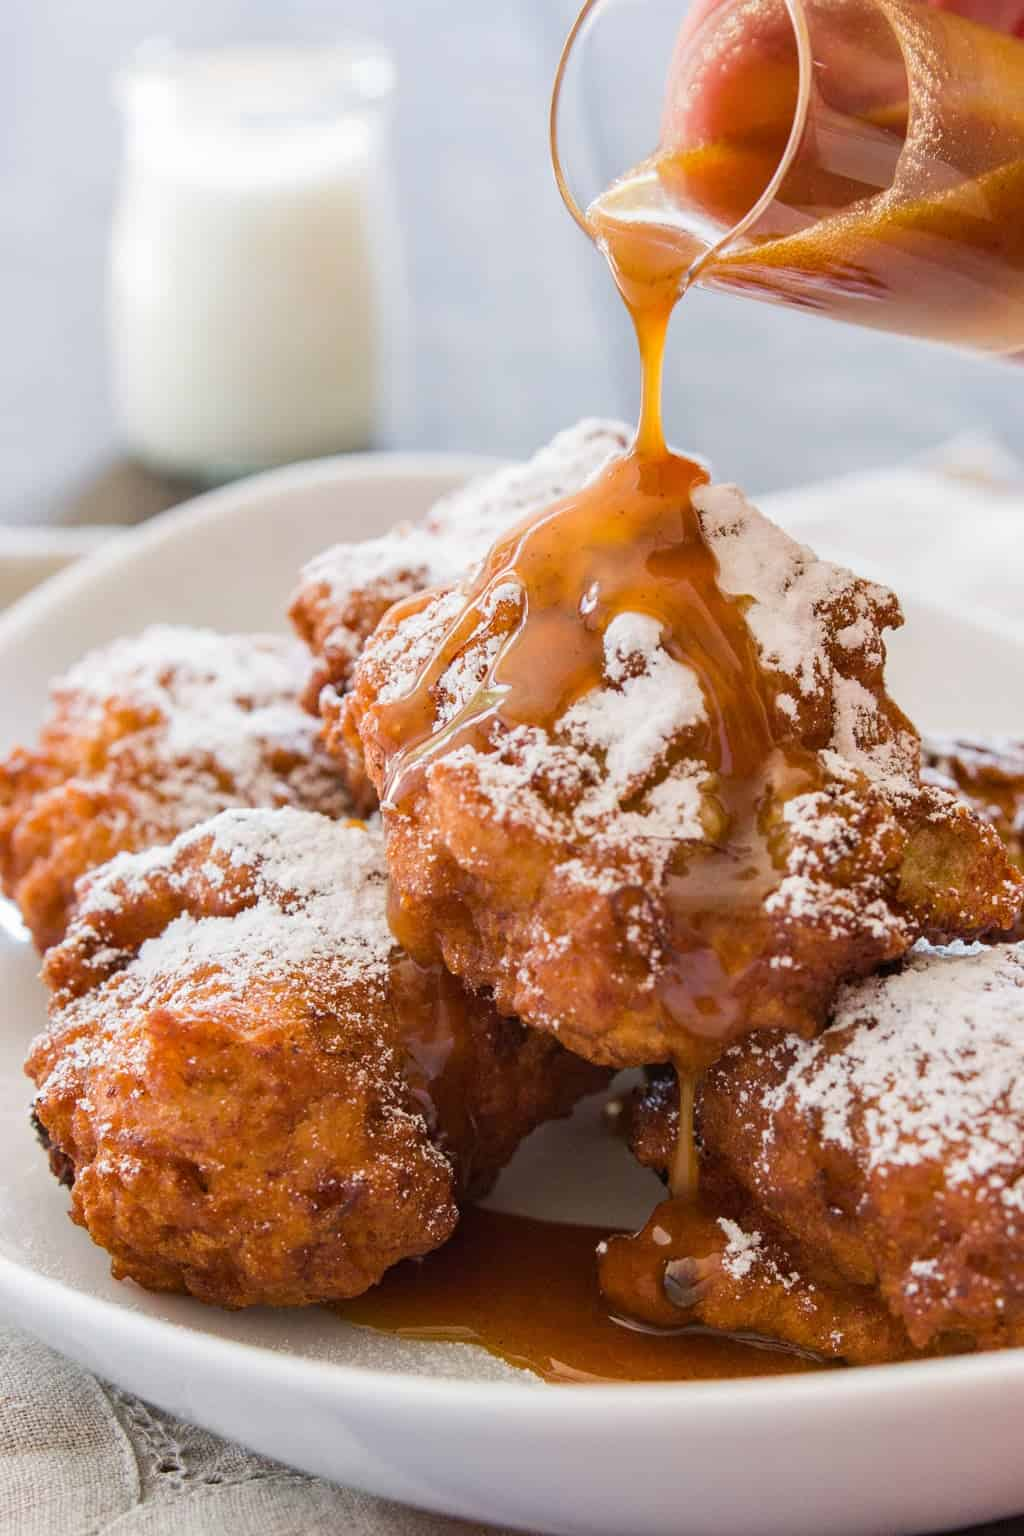 These banana fritters drizzled with vanilla caramel sauce are simply irressistable.